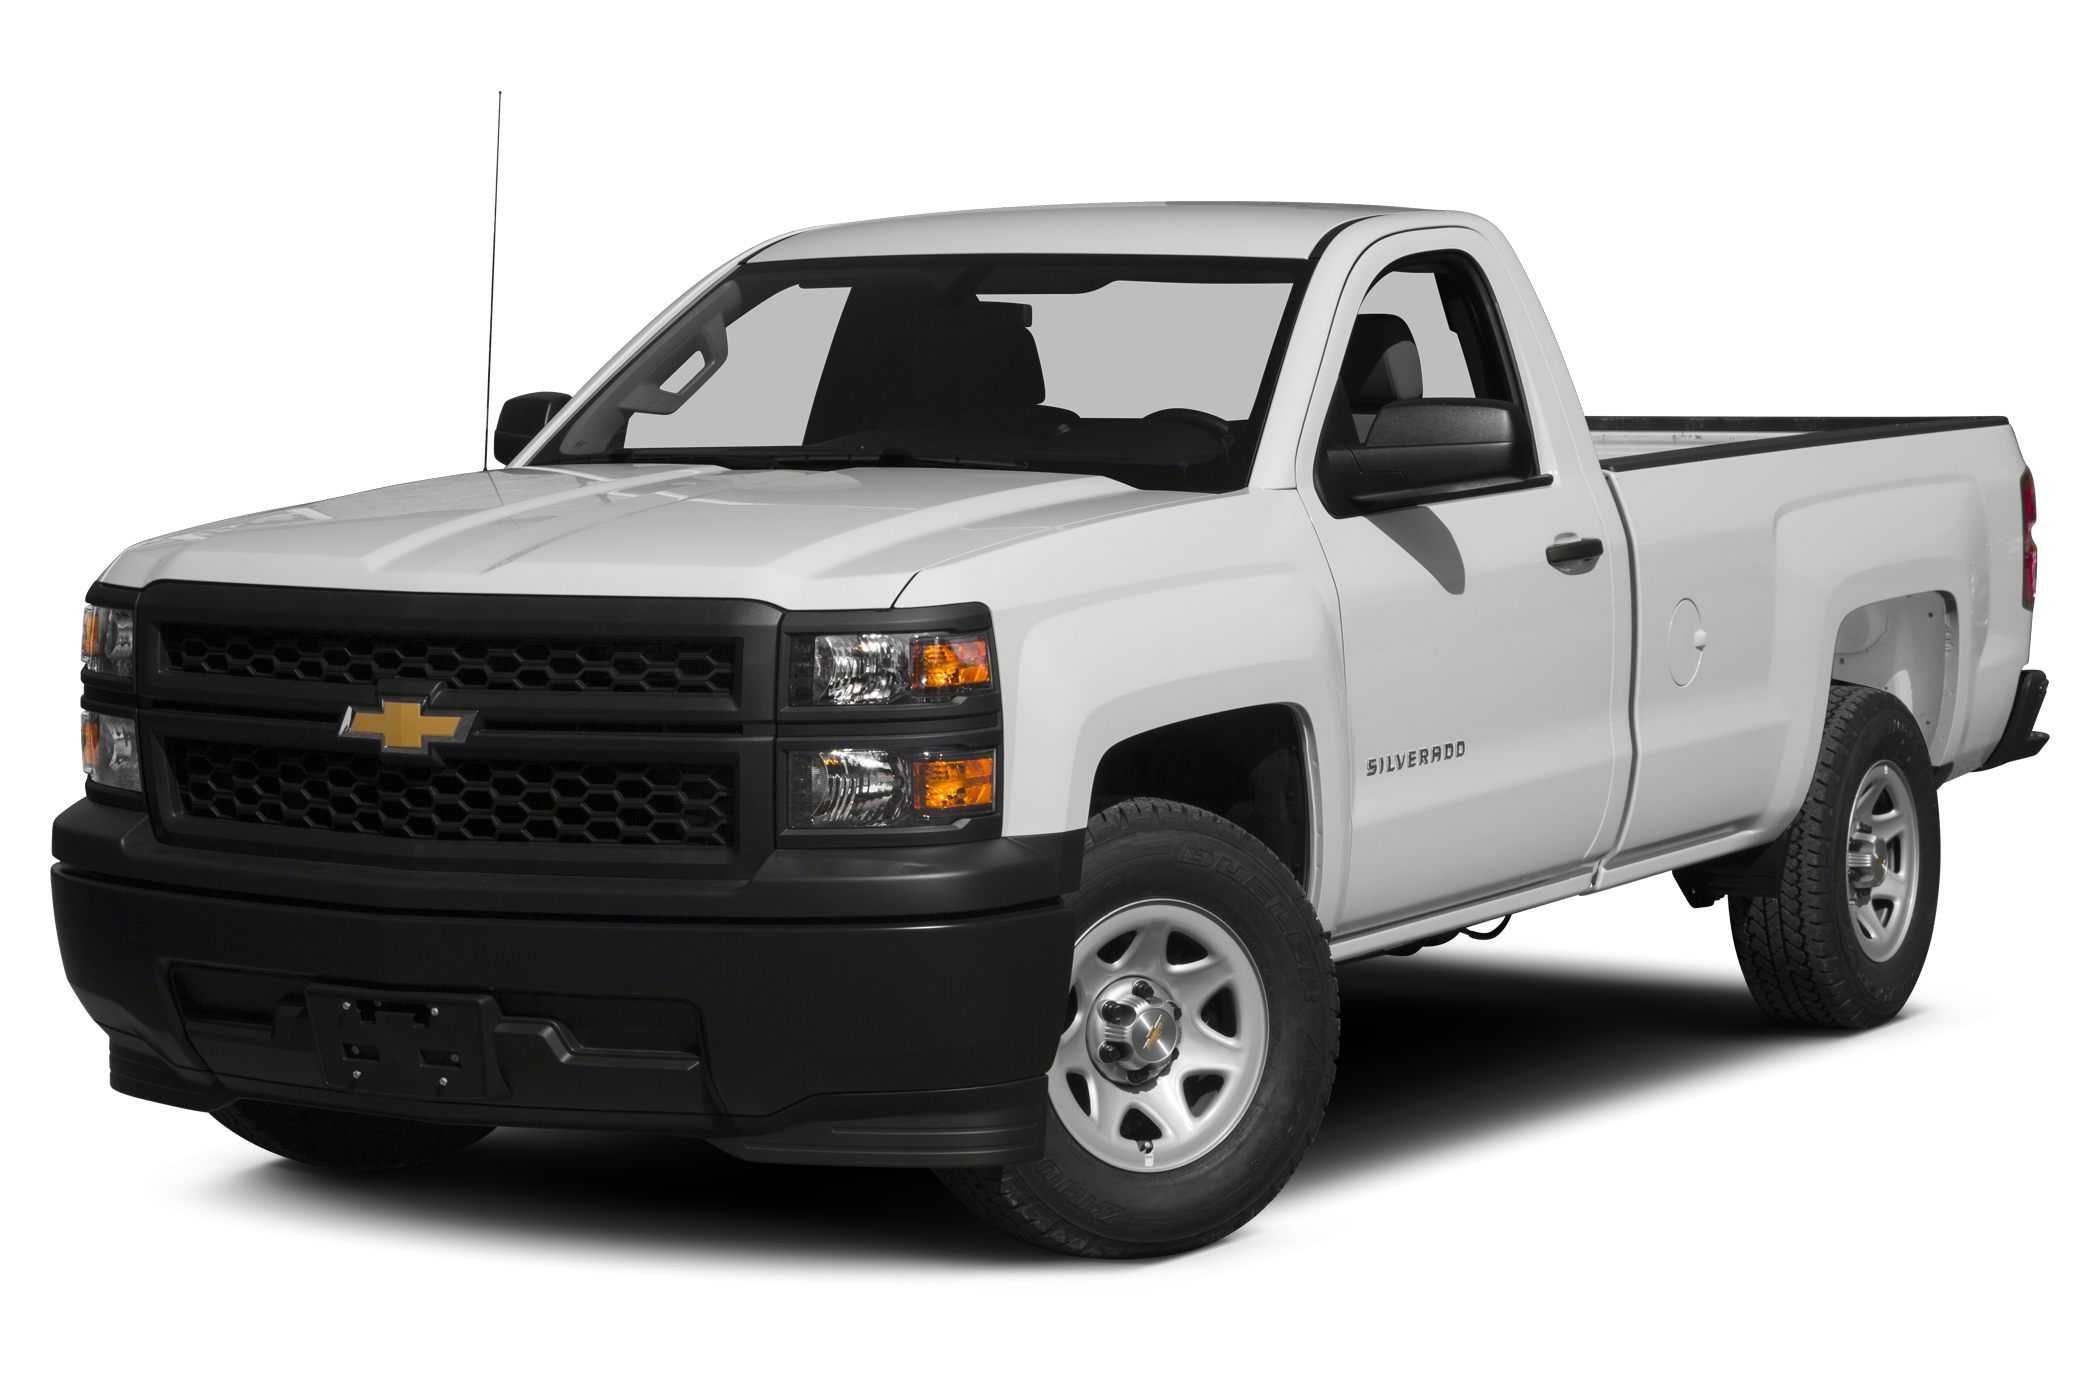 2015 Chevrolet Silverado 1500 1LT Crew Cab Pickup for sale in Rockford for $49,073 with 2 miles.